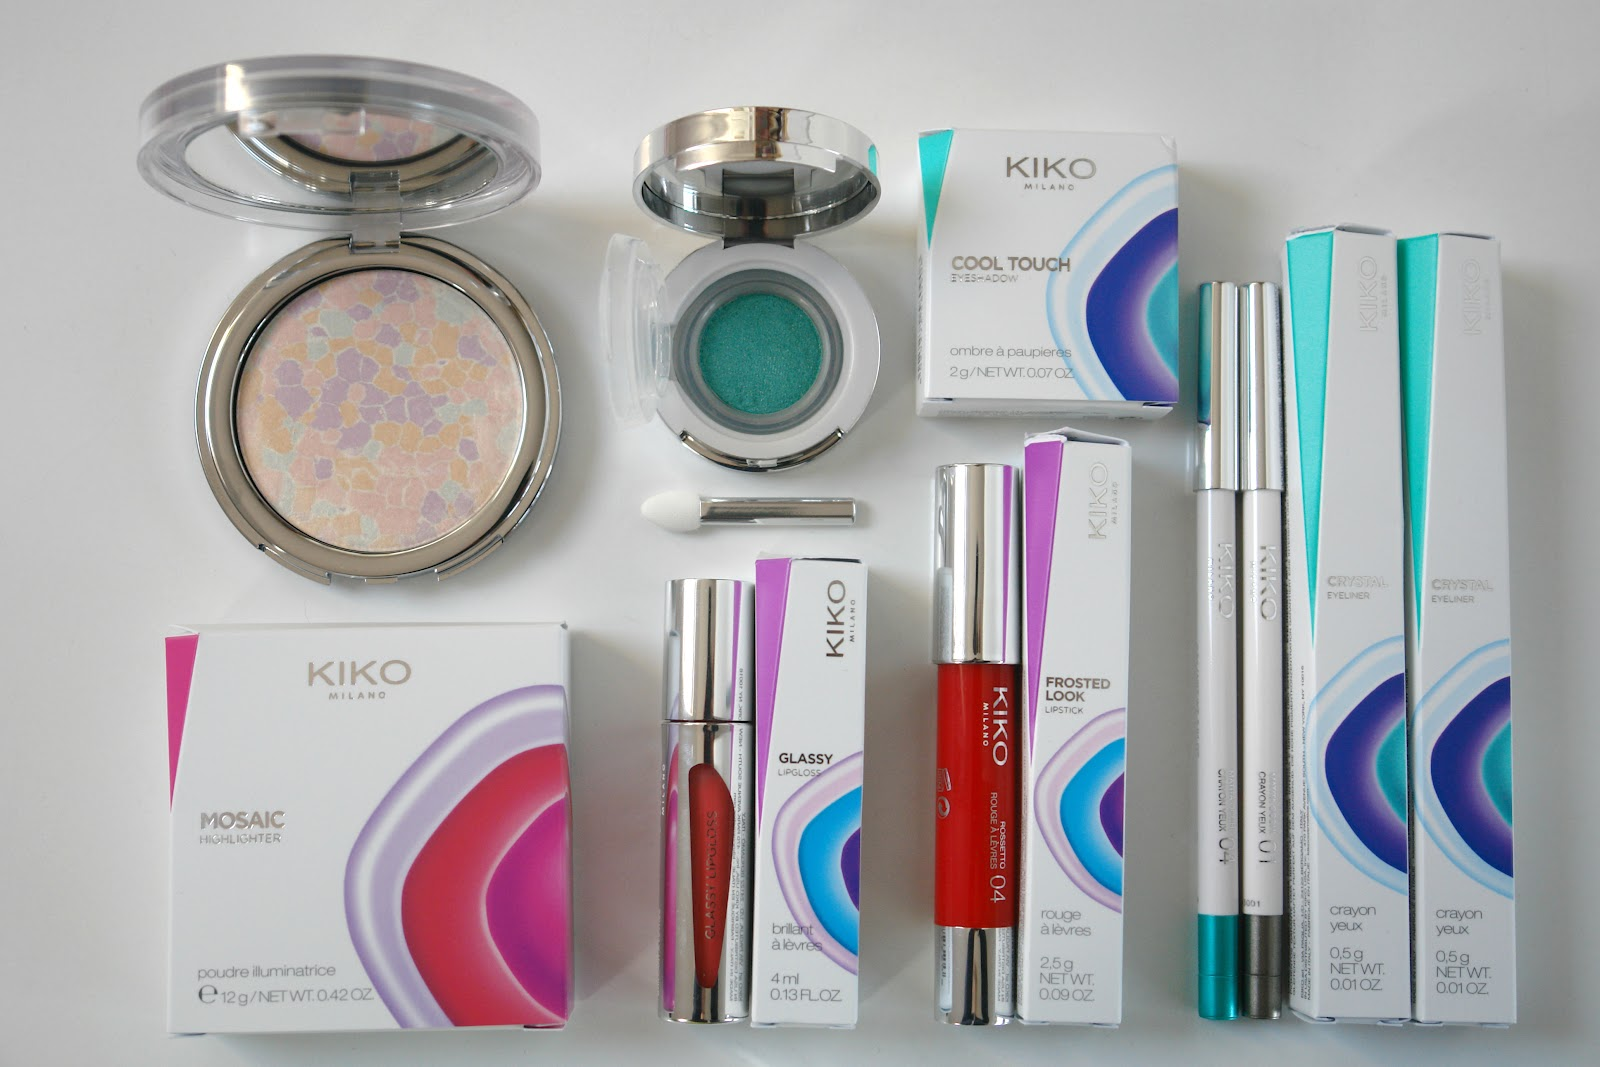 KIKO Generation Next collection, beauty, KIKO, review, 2015, Generation Next Face Brush, CC Cream Cushion, Masterpiece Bronzer, Mosaic Blush, Crystal Fusion Super Moisture Face Serum, KIKO Glassy Lipgloss, KIKO Frosted Look Lipstick, KIKO Crystal Eyeliner, KIKO Cool Touch Eyeshadow in Experimental Green, KIKO Mosaic Highlighter in Future Light